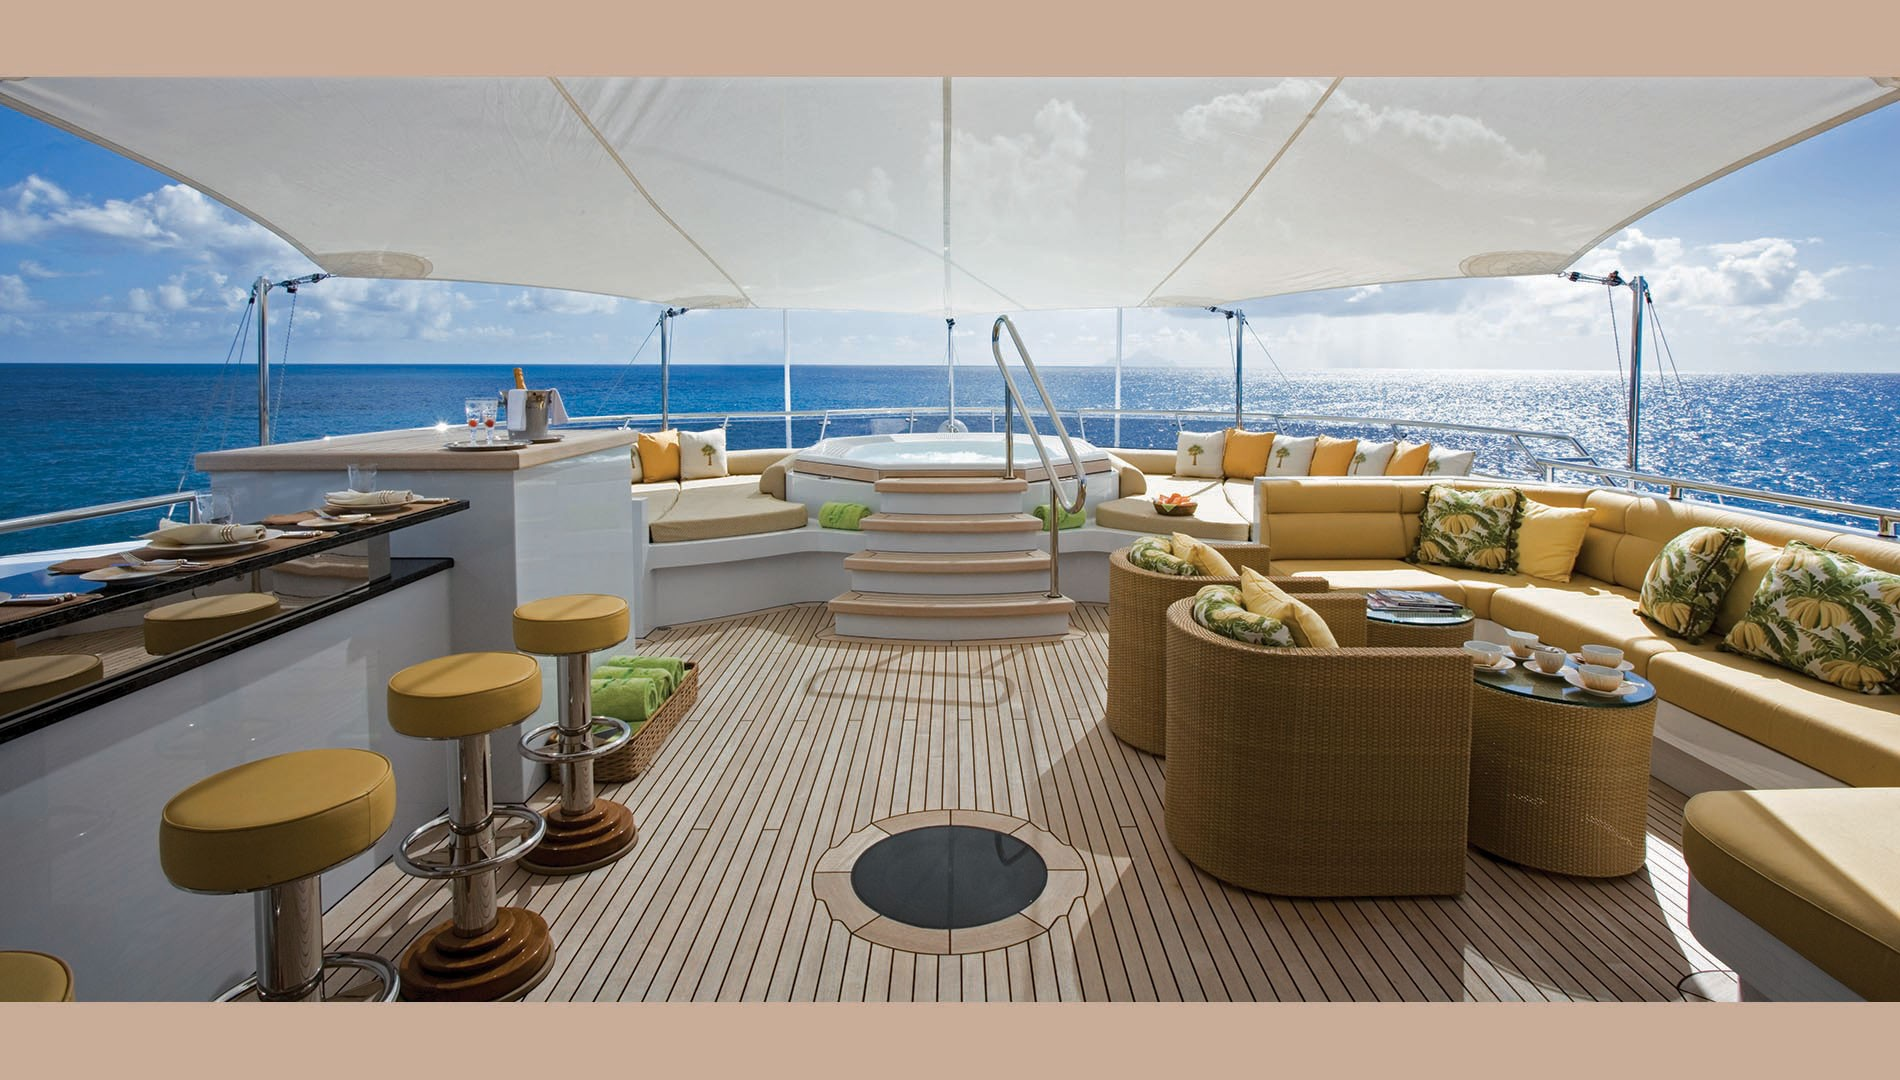 Expansive Sun Deck With Jacuzzi, Bar And Seating Areas